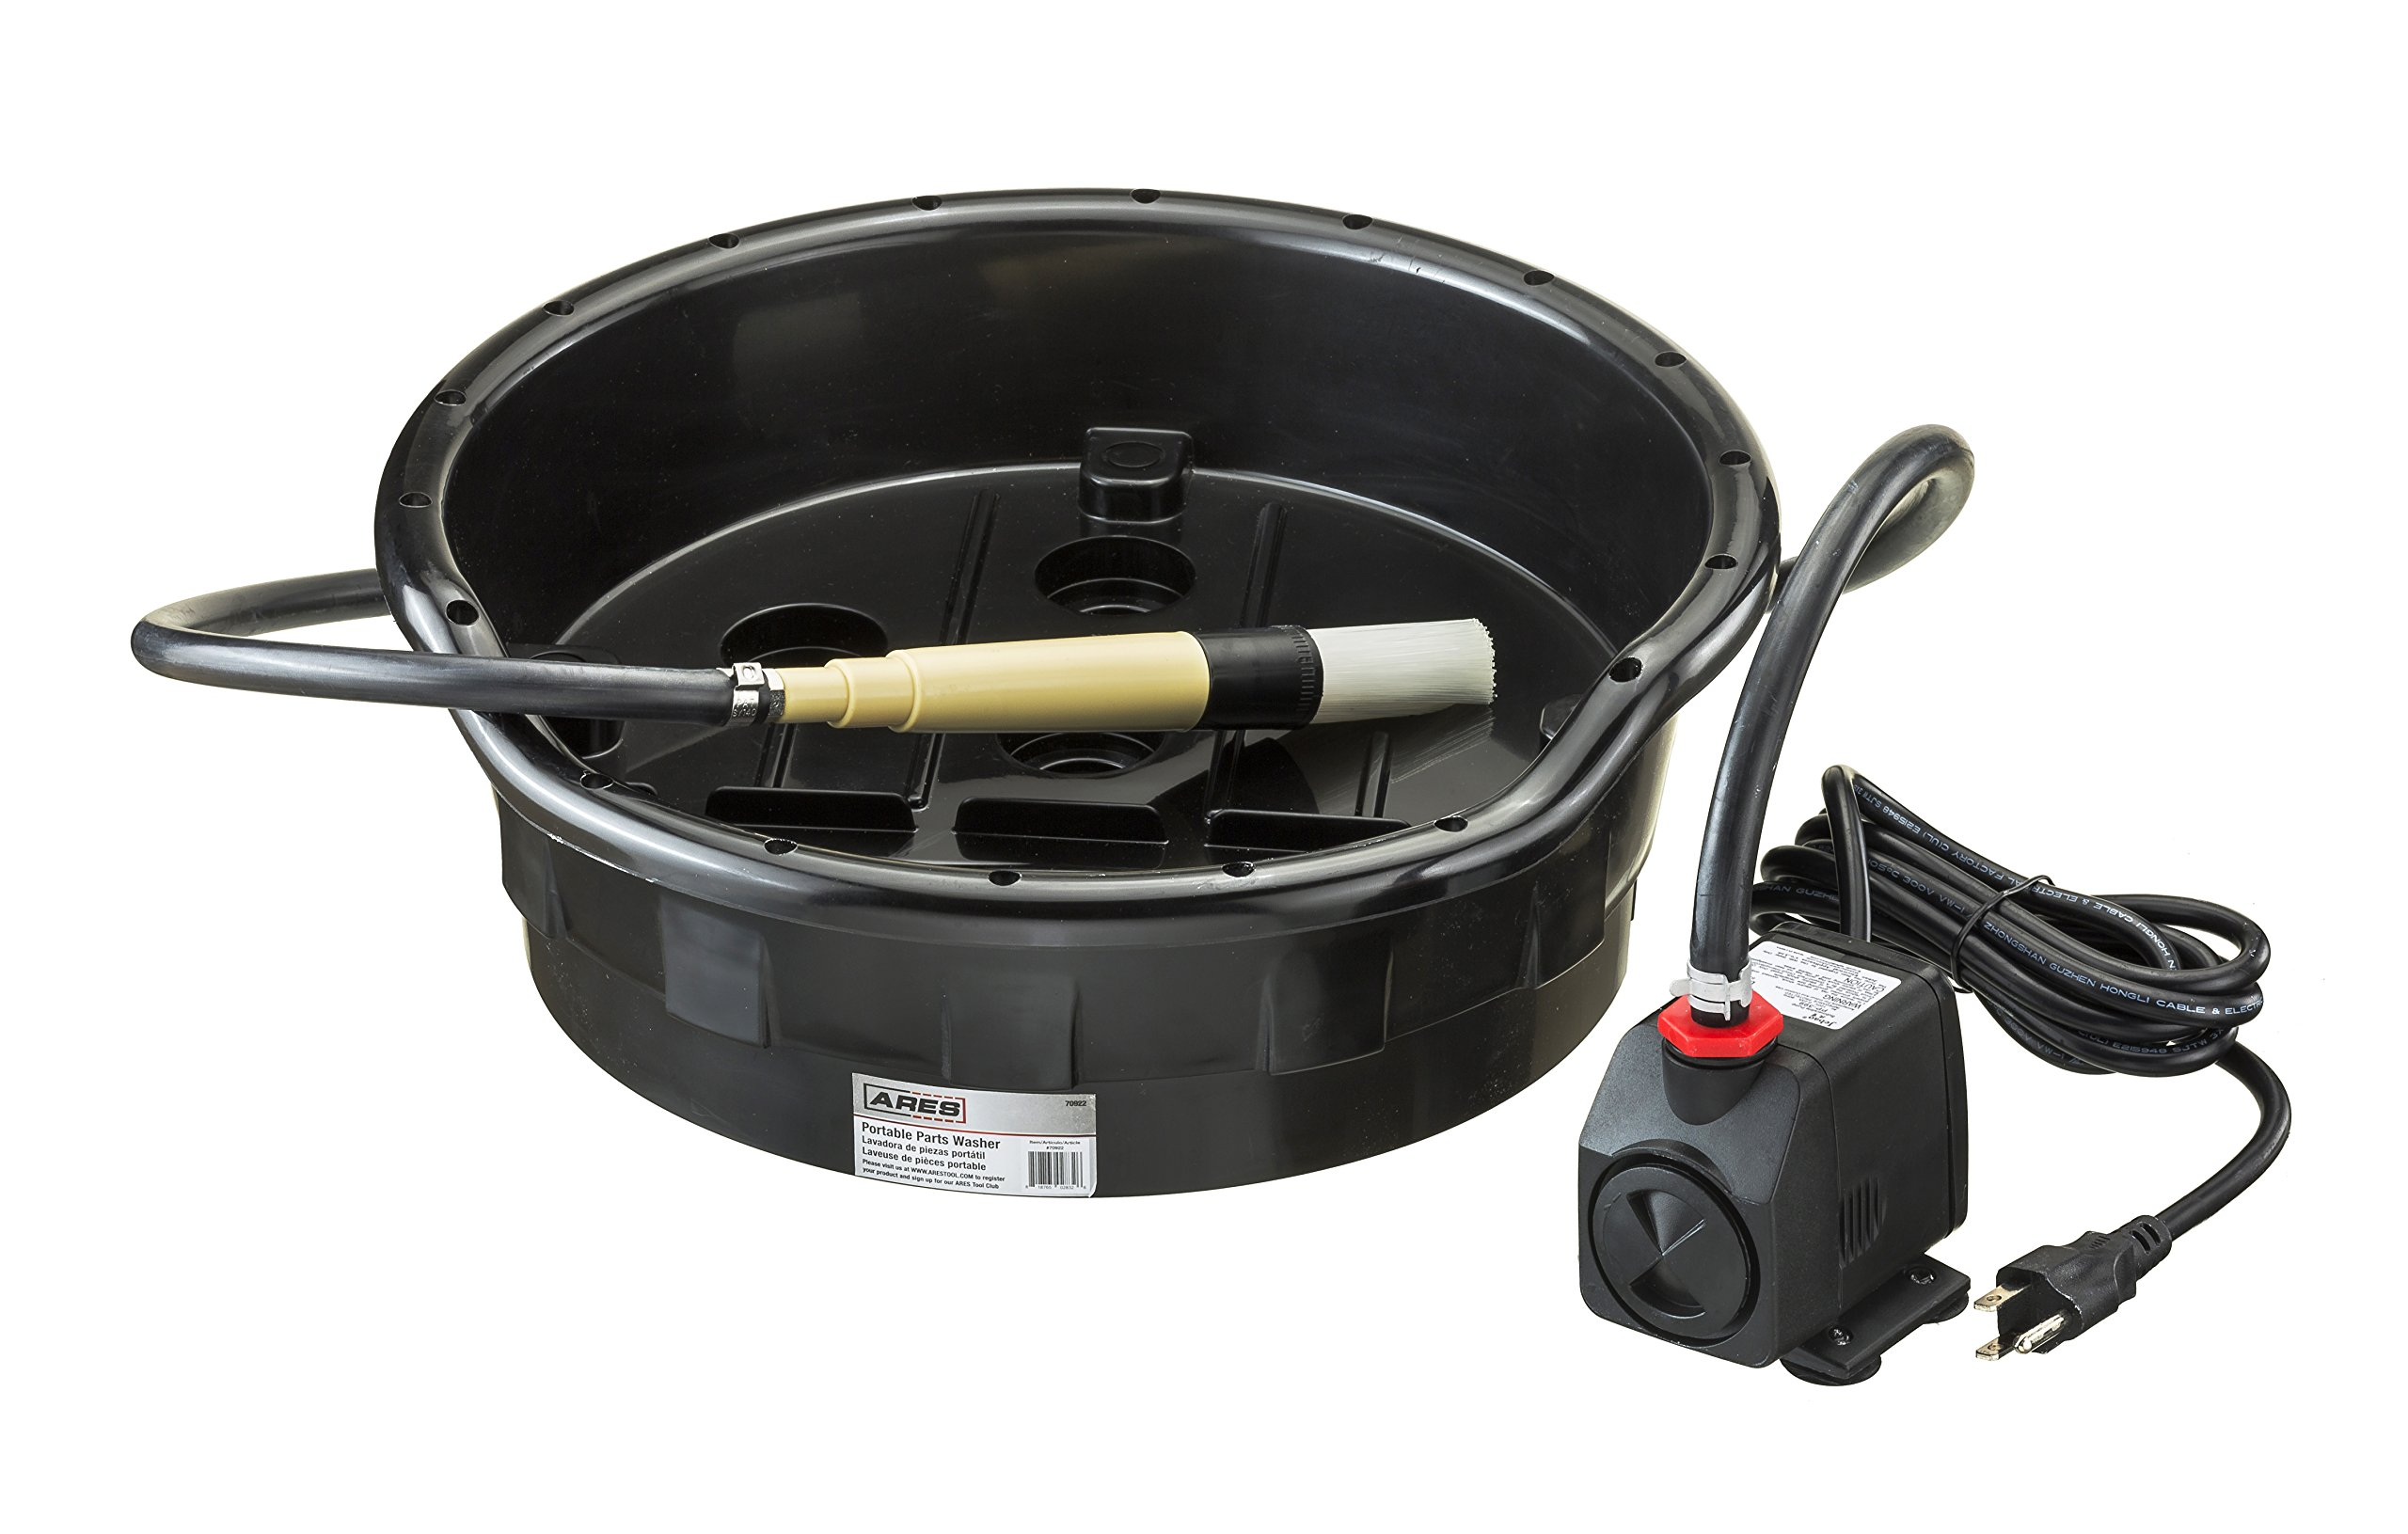 ARES 70922 | Portable Parts Washer | Easily Fits 5 Gallon Buckets | For Degreasing Small Parts and Tools